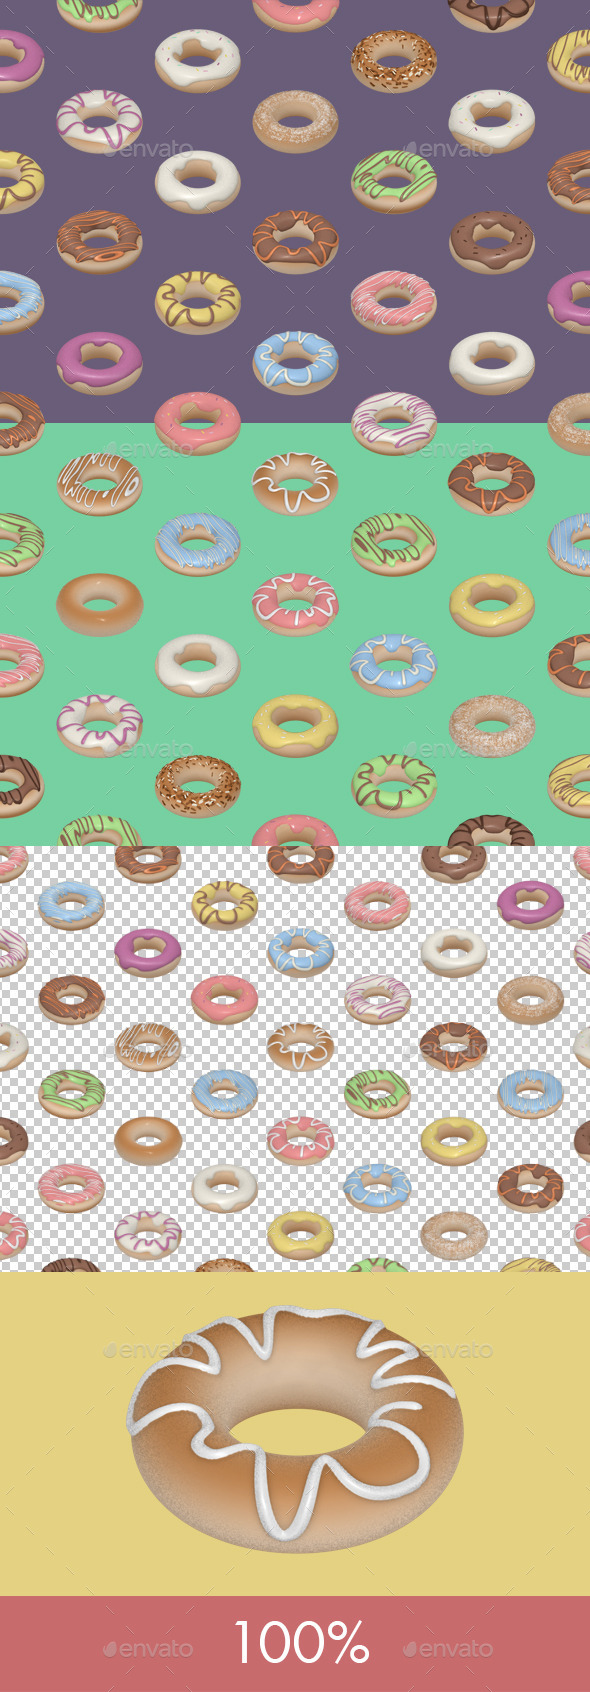 Donuts Seamless Tile - Patterns Backgrounds